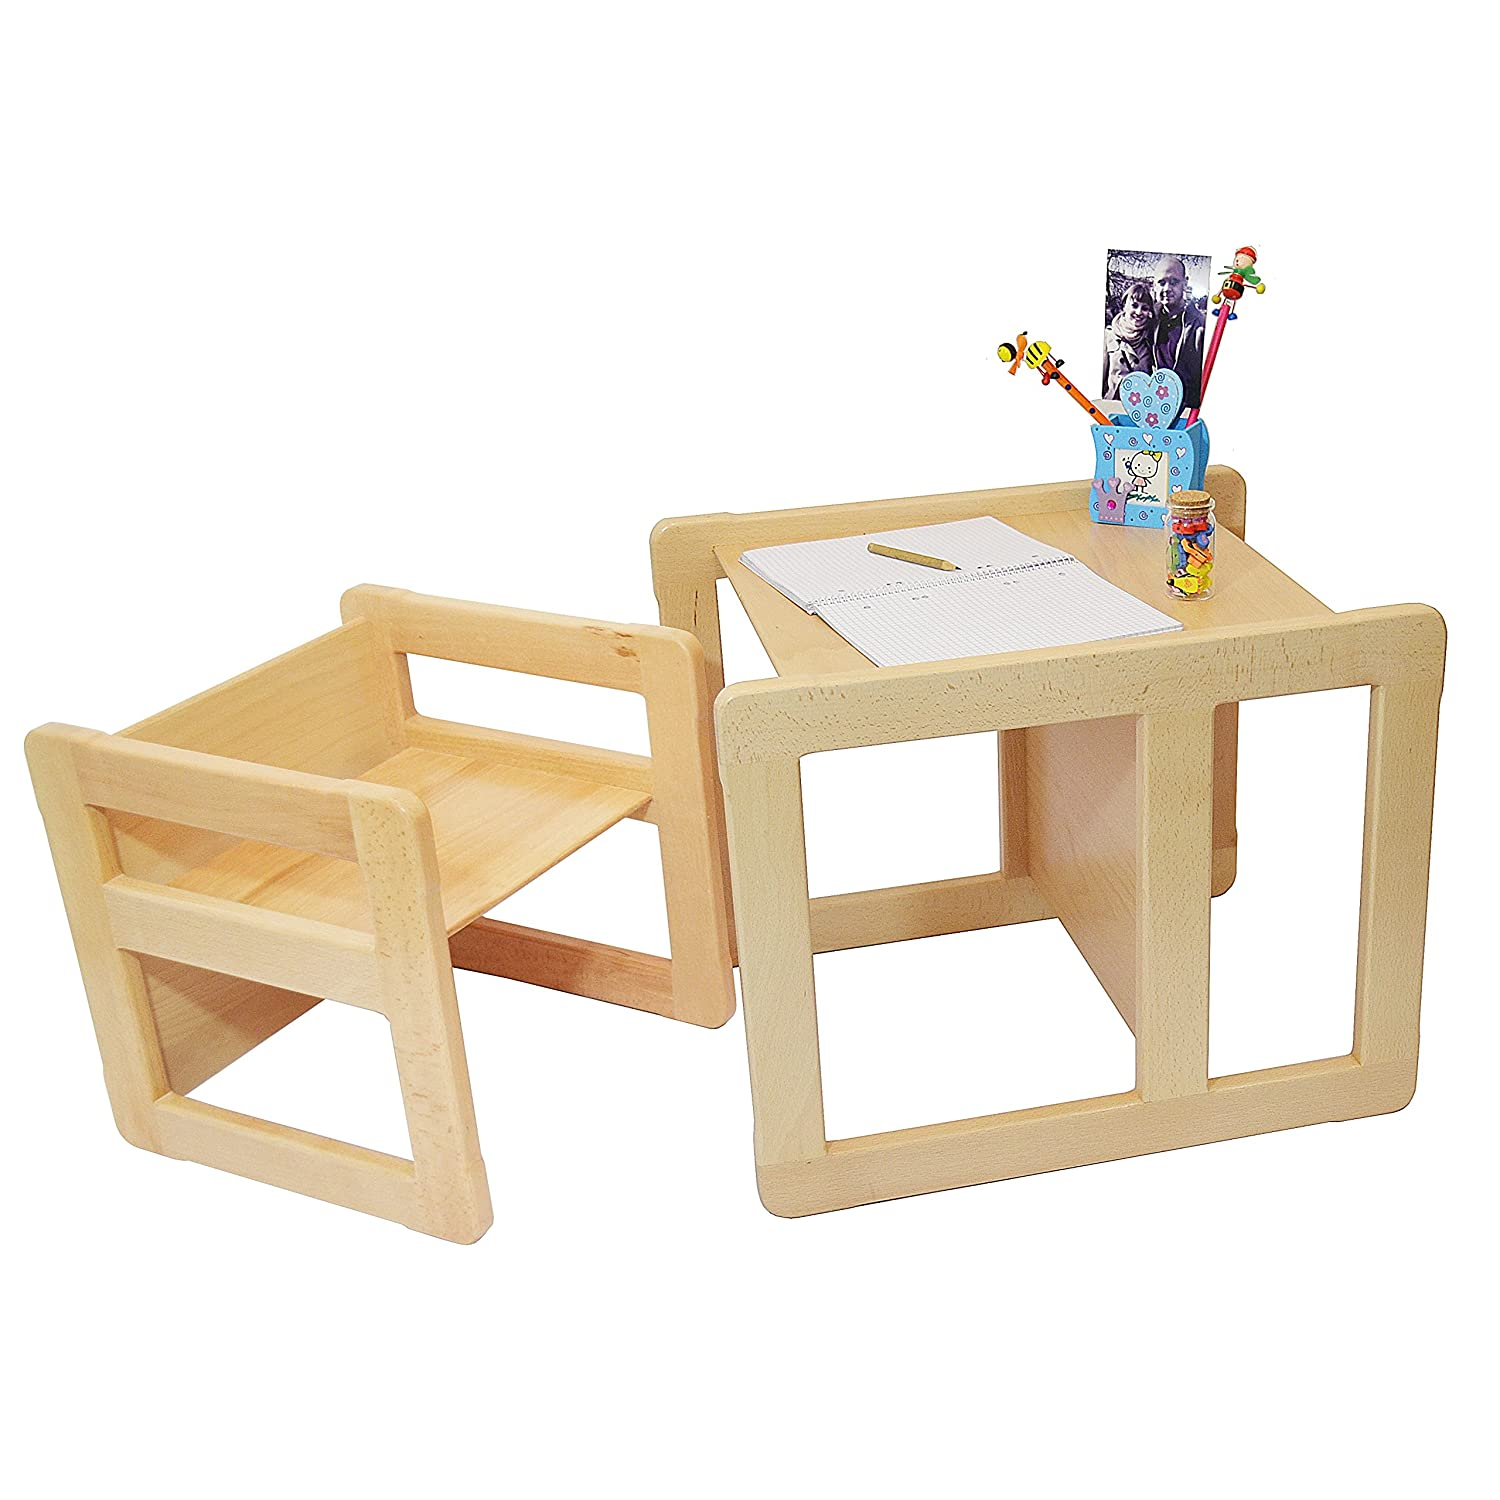 3 in 1 adults multifunctional nest of coffee tables set of 2 or